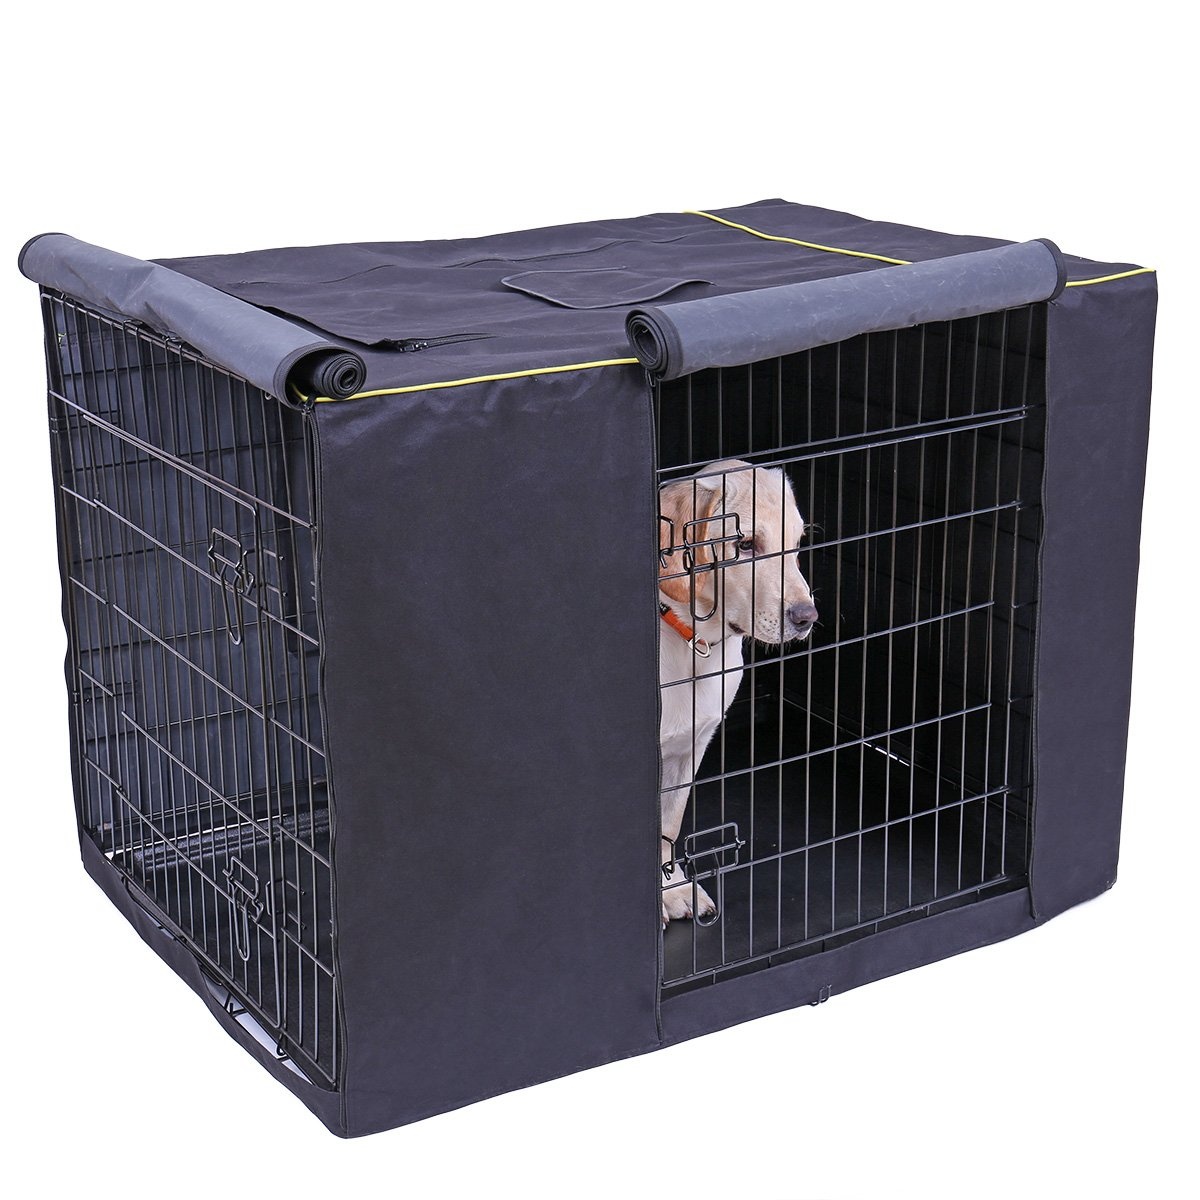 Speedy Pet Waterproof Dog Kennel Covers Durable Windproof Dust-Proof Crate Cover Indoor/Outdoor for Dog Cage Black (2XL(47.6'' x 30.3'' x 32.3''), Black)